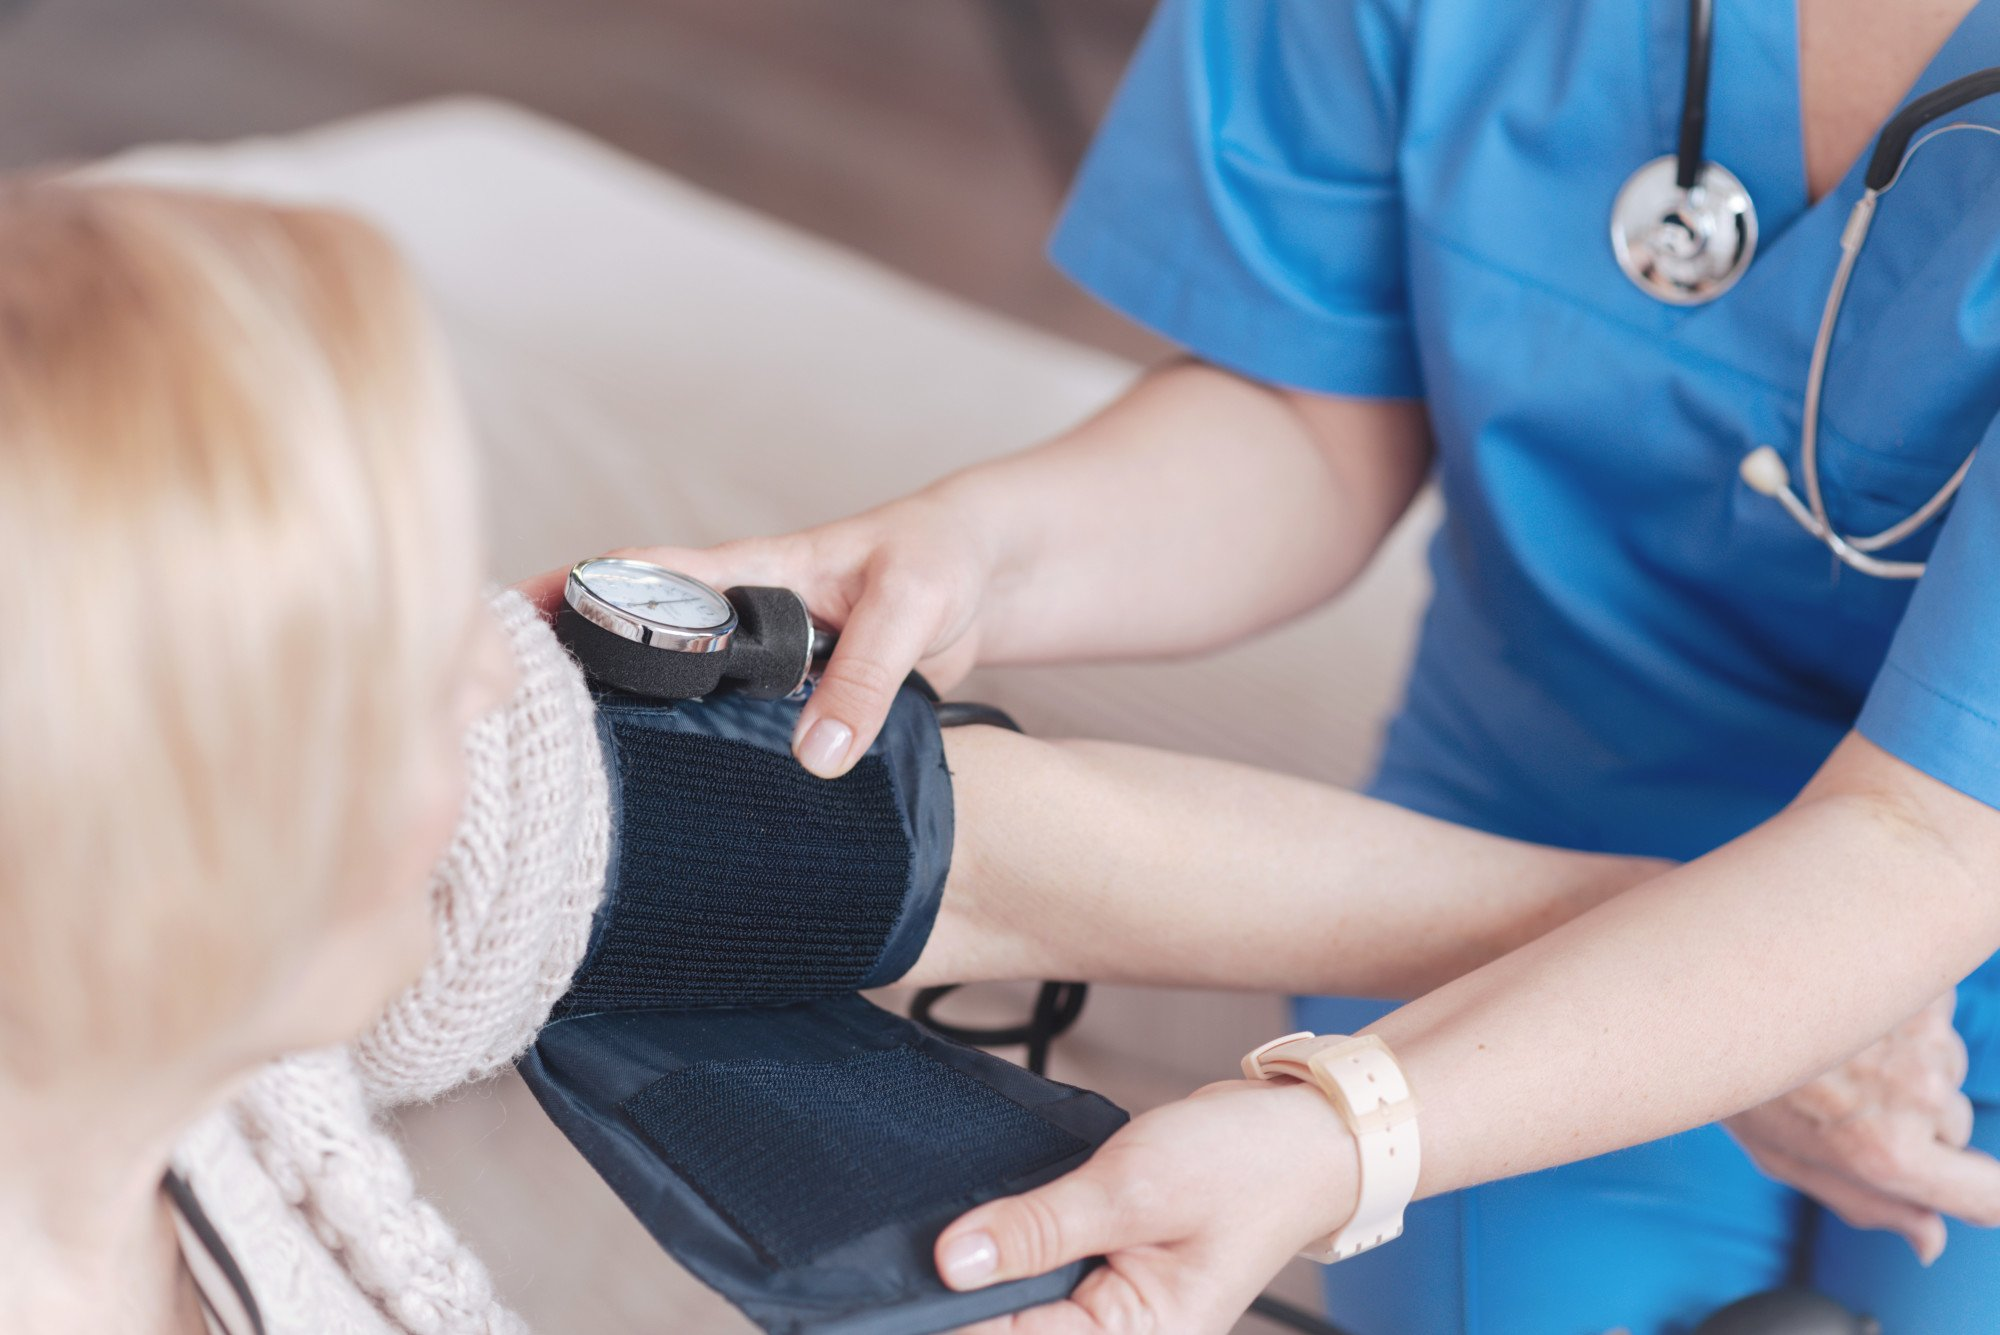 Stress management: Image of a woman having her blood pressure taken by a nurse